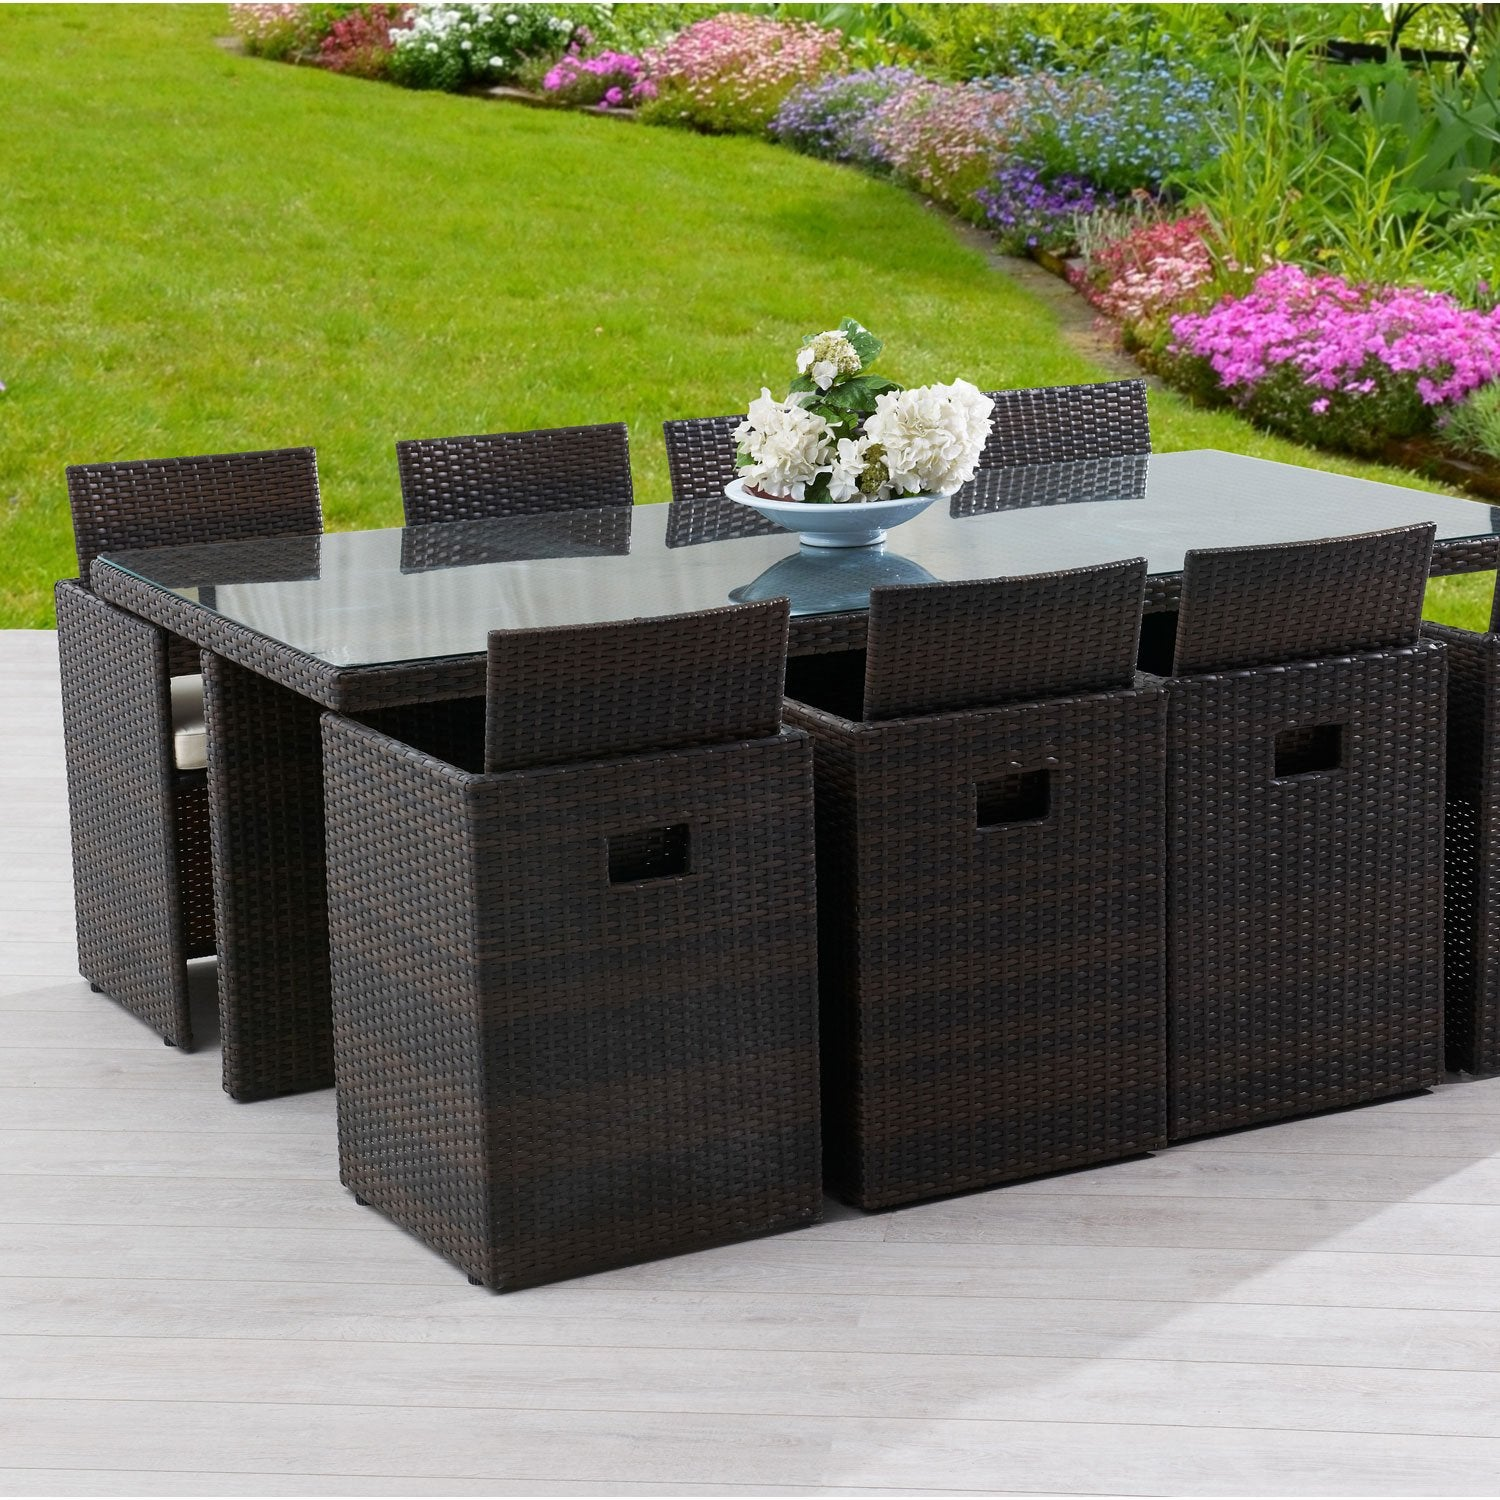 Salon de jardin encastrable r sine tress e marron 1 table for Table de jardin tresse pas cher